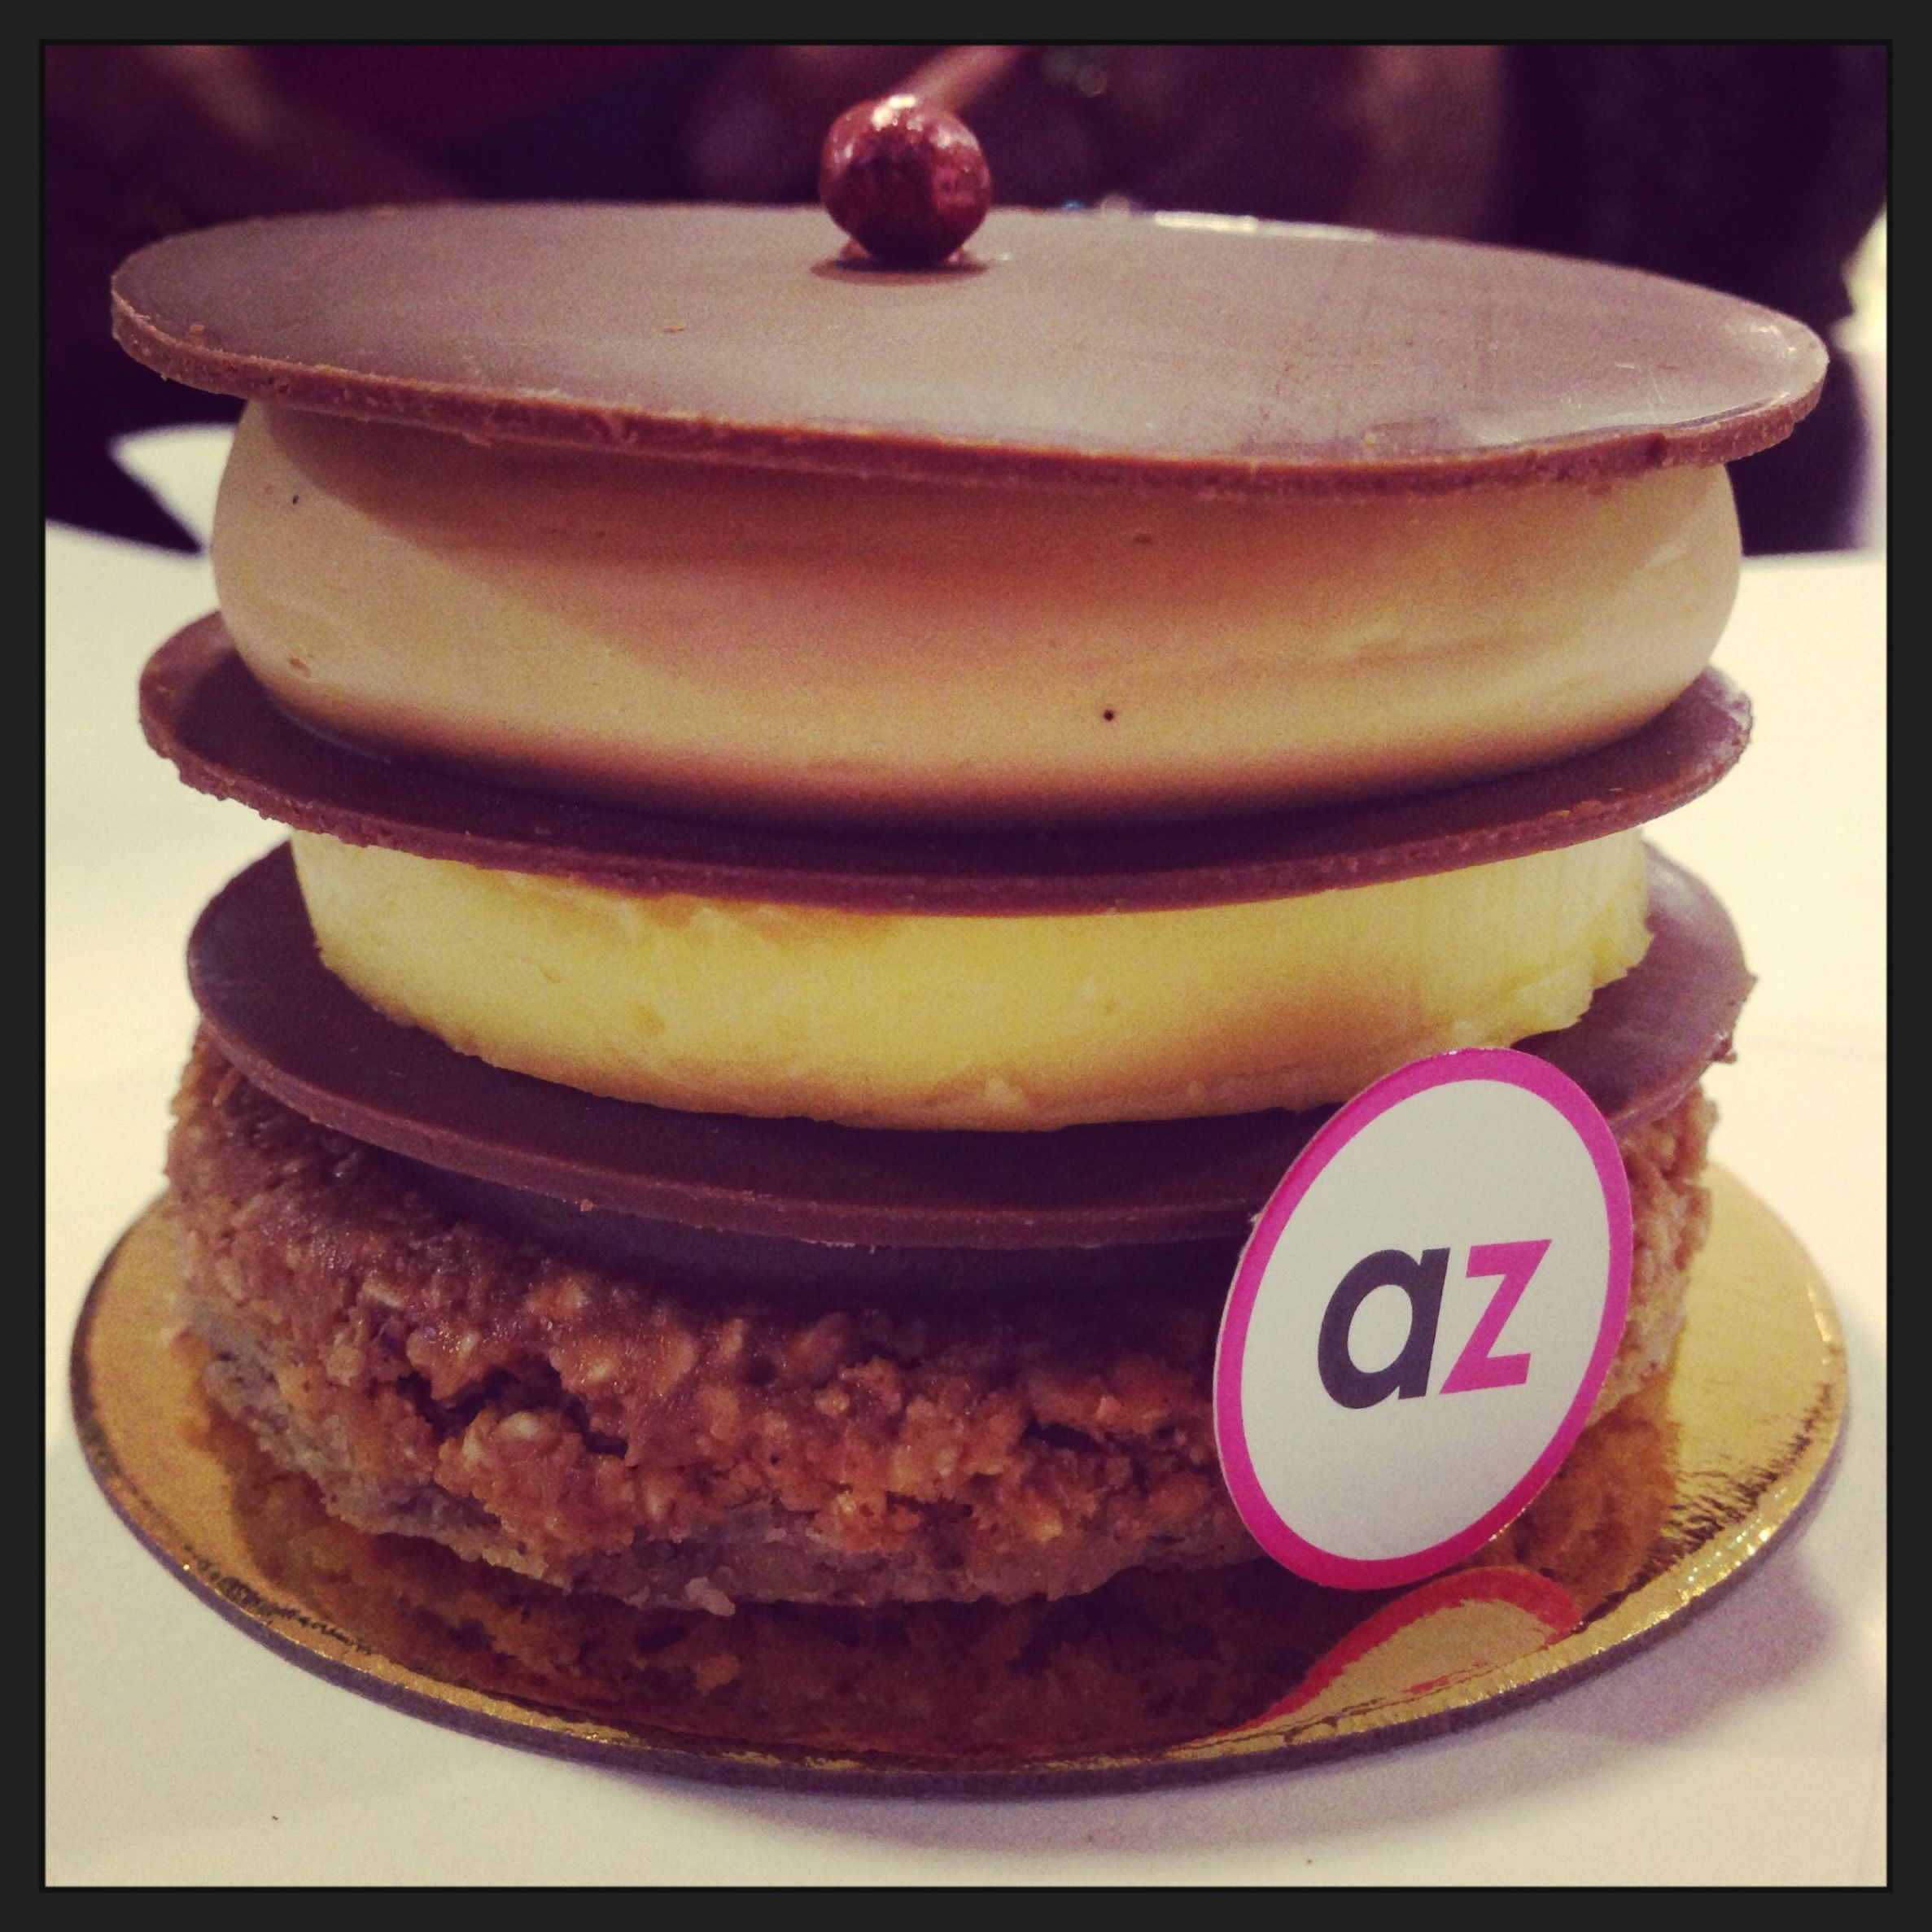 Had this Adriano Zumbo Dessert forget the name of it, but it was ...